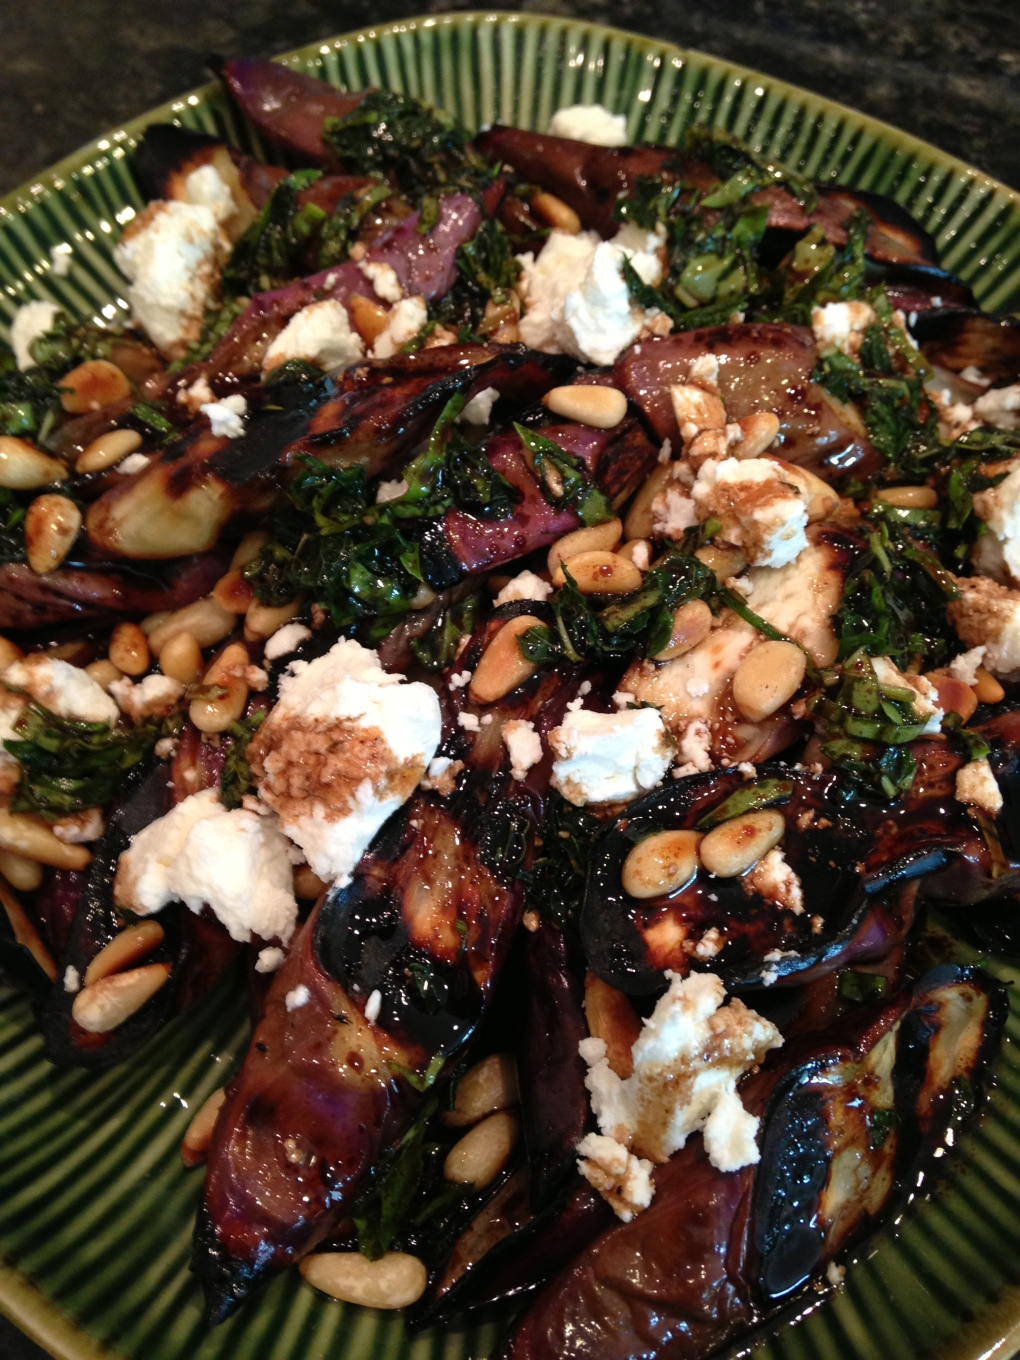 Grilled Eggplant & Goat Cheese Salad